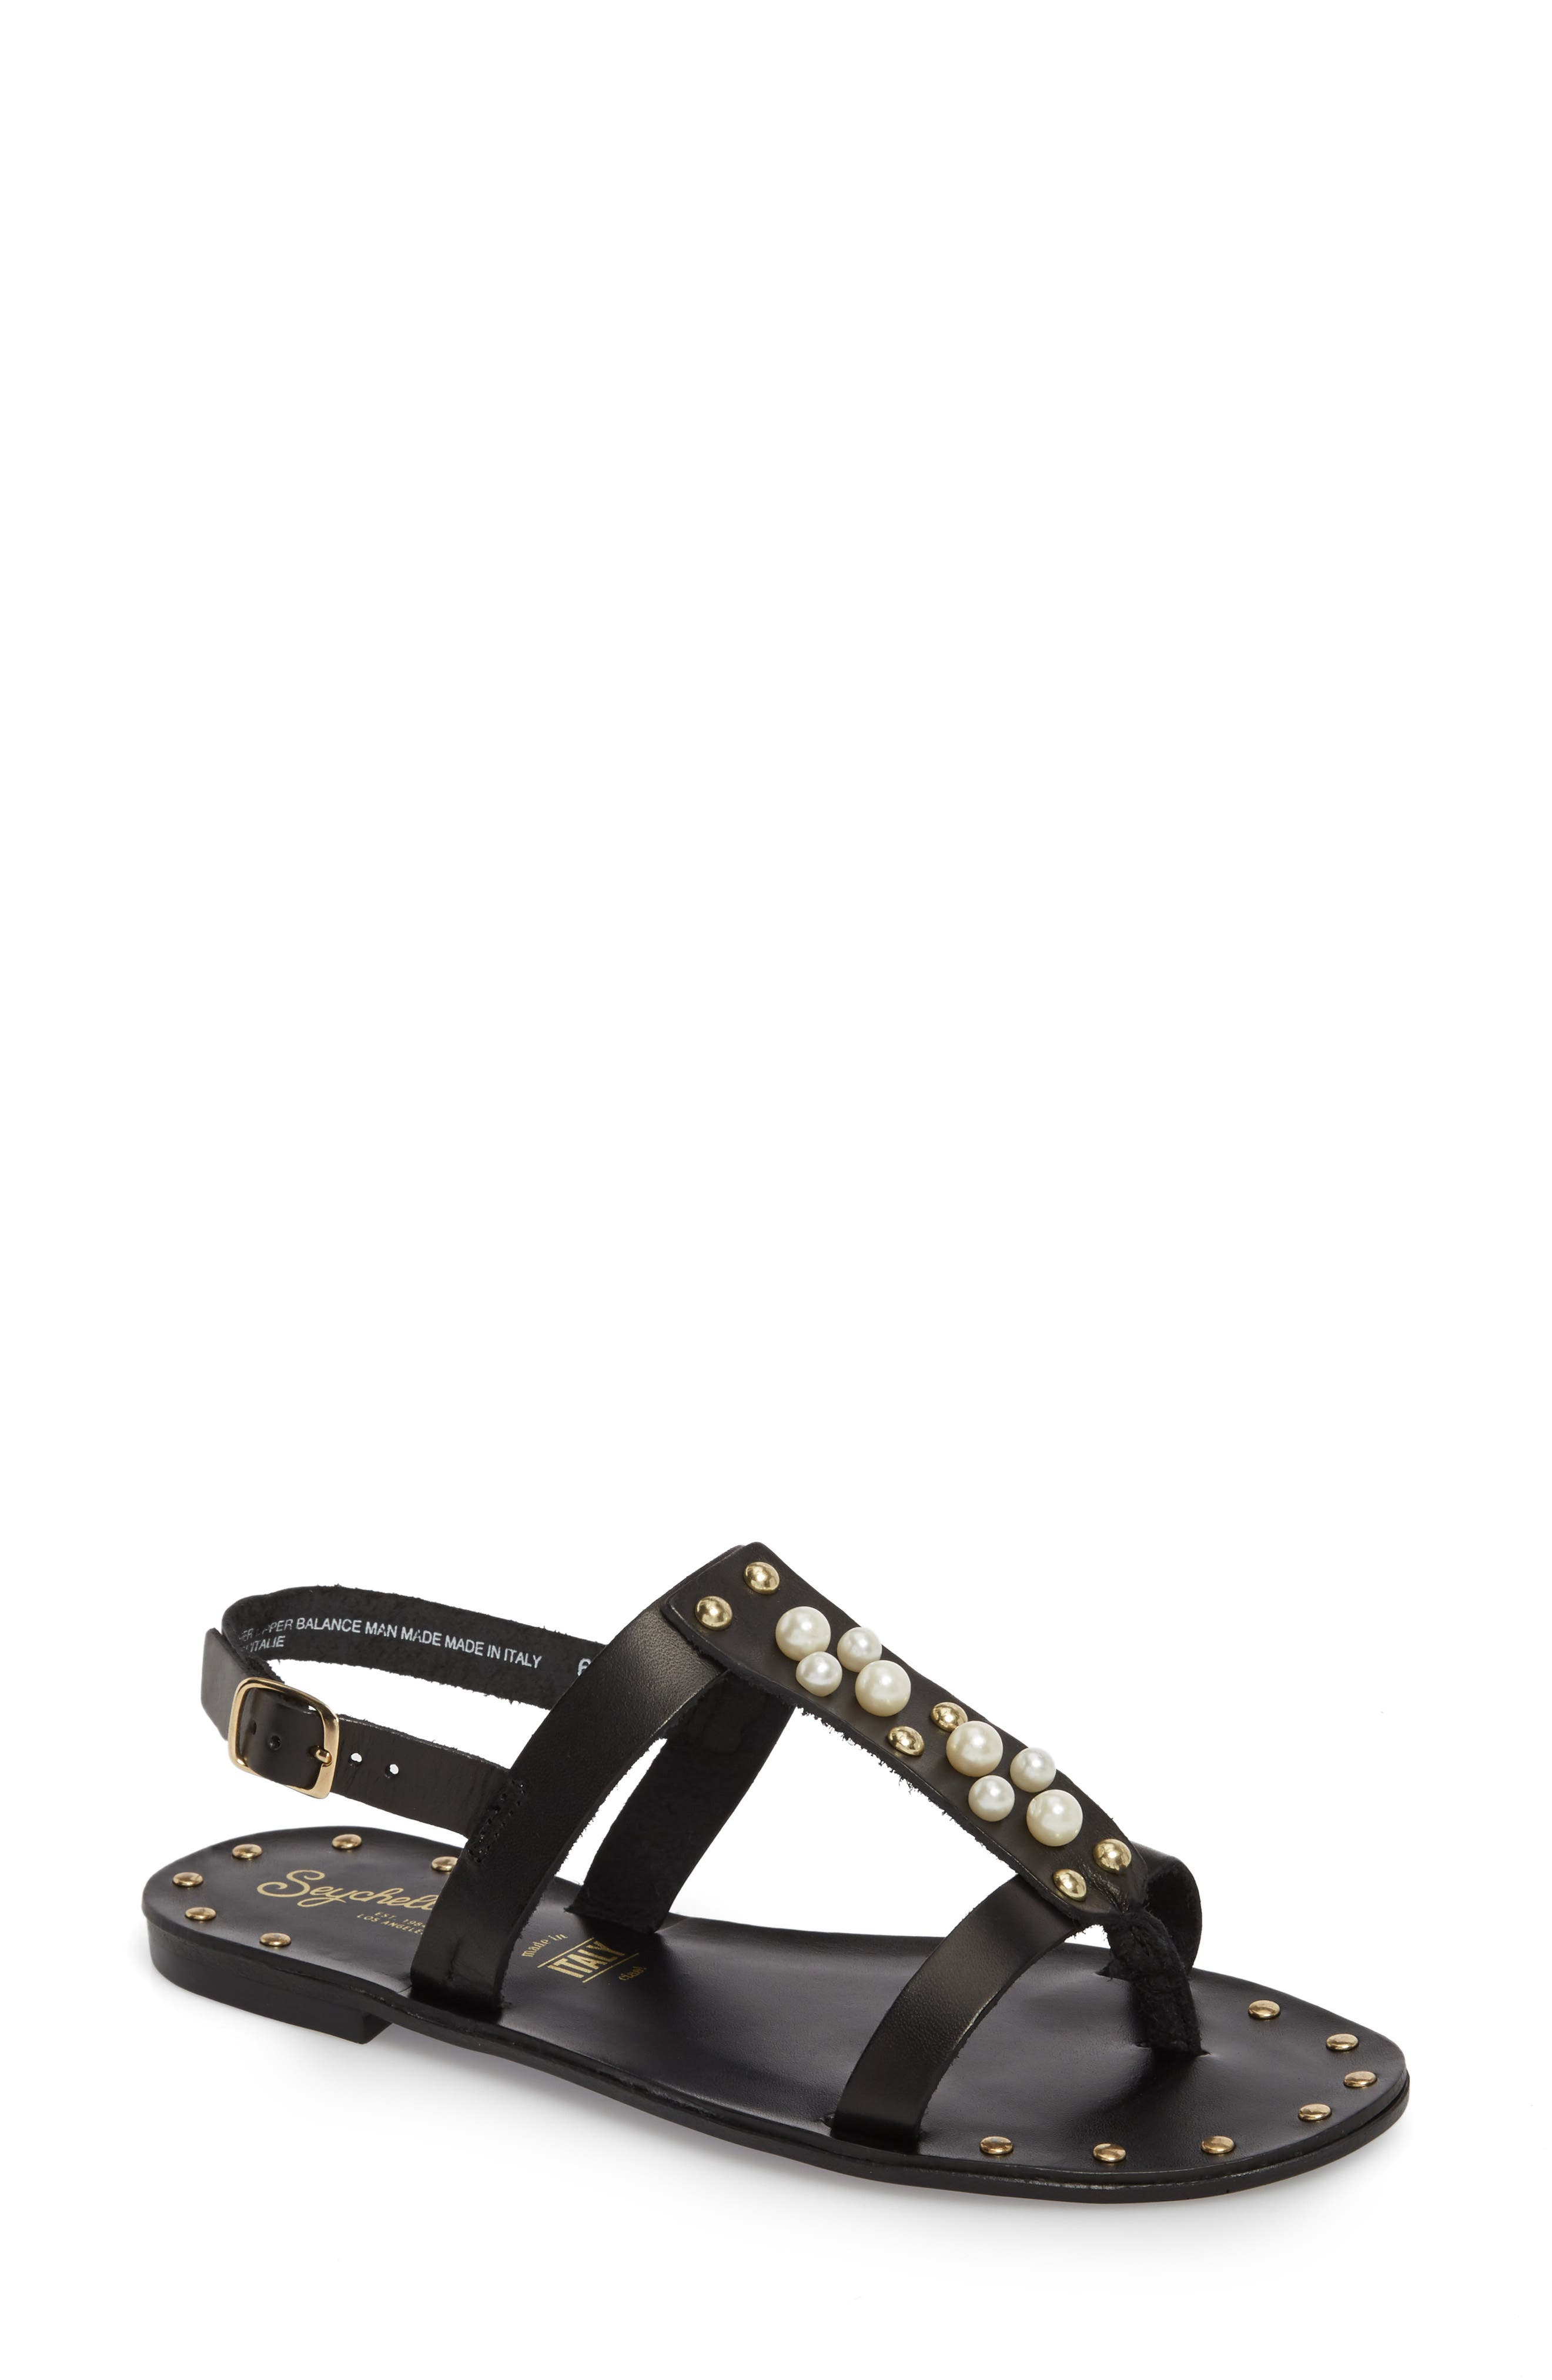 Day of Rest Sandal,                         Main,                         color, Black Leather